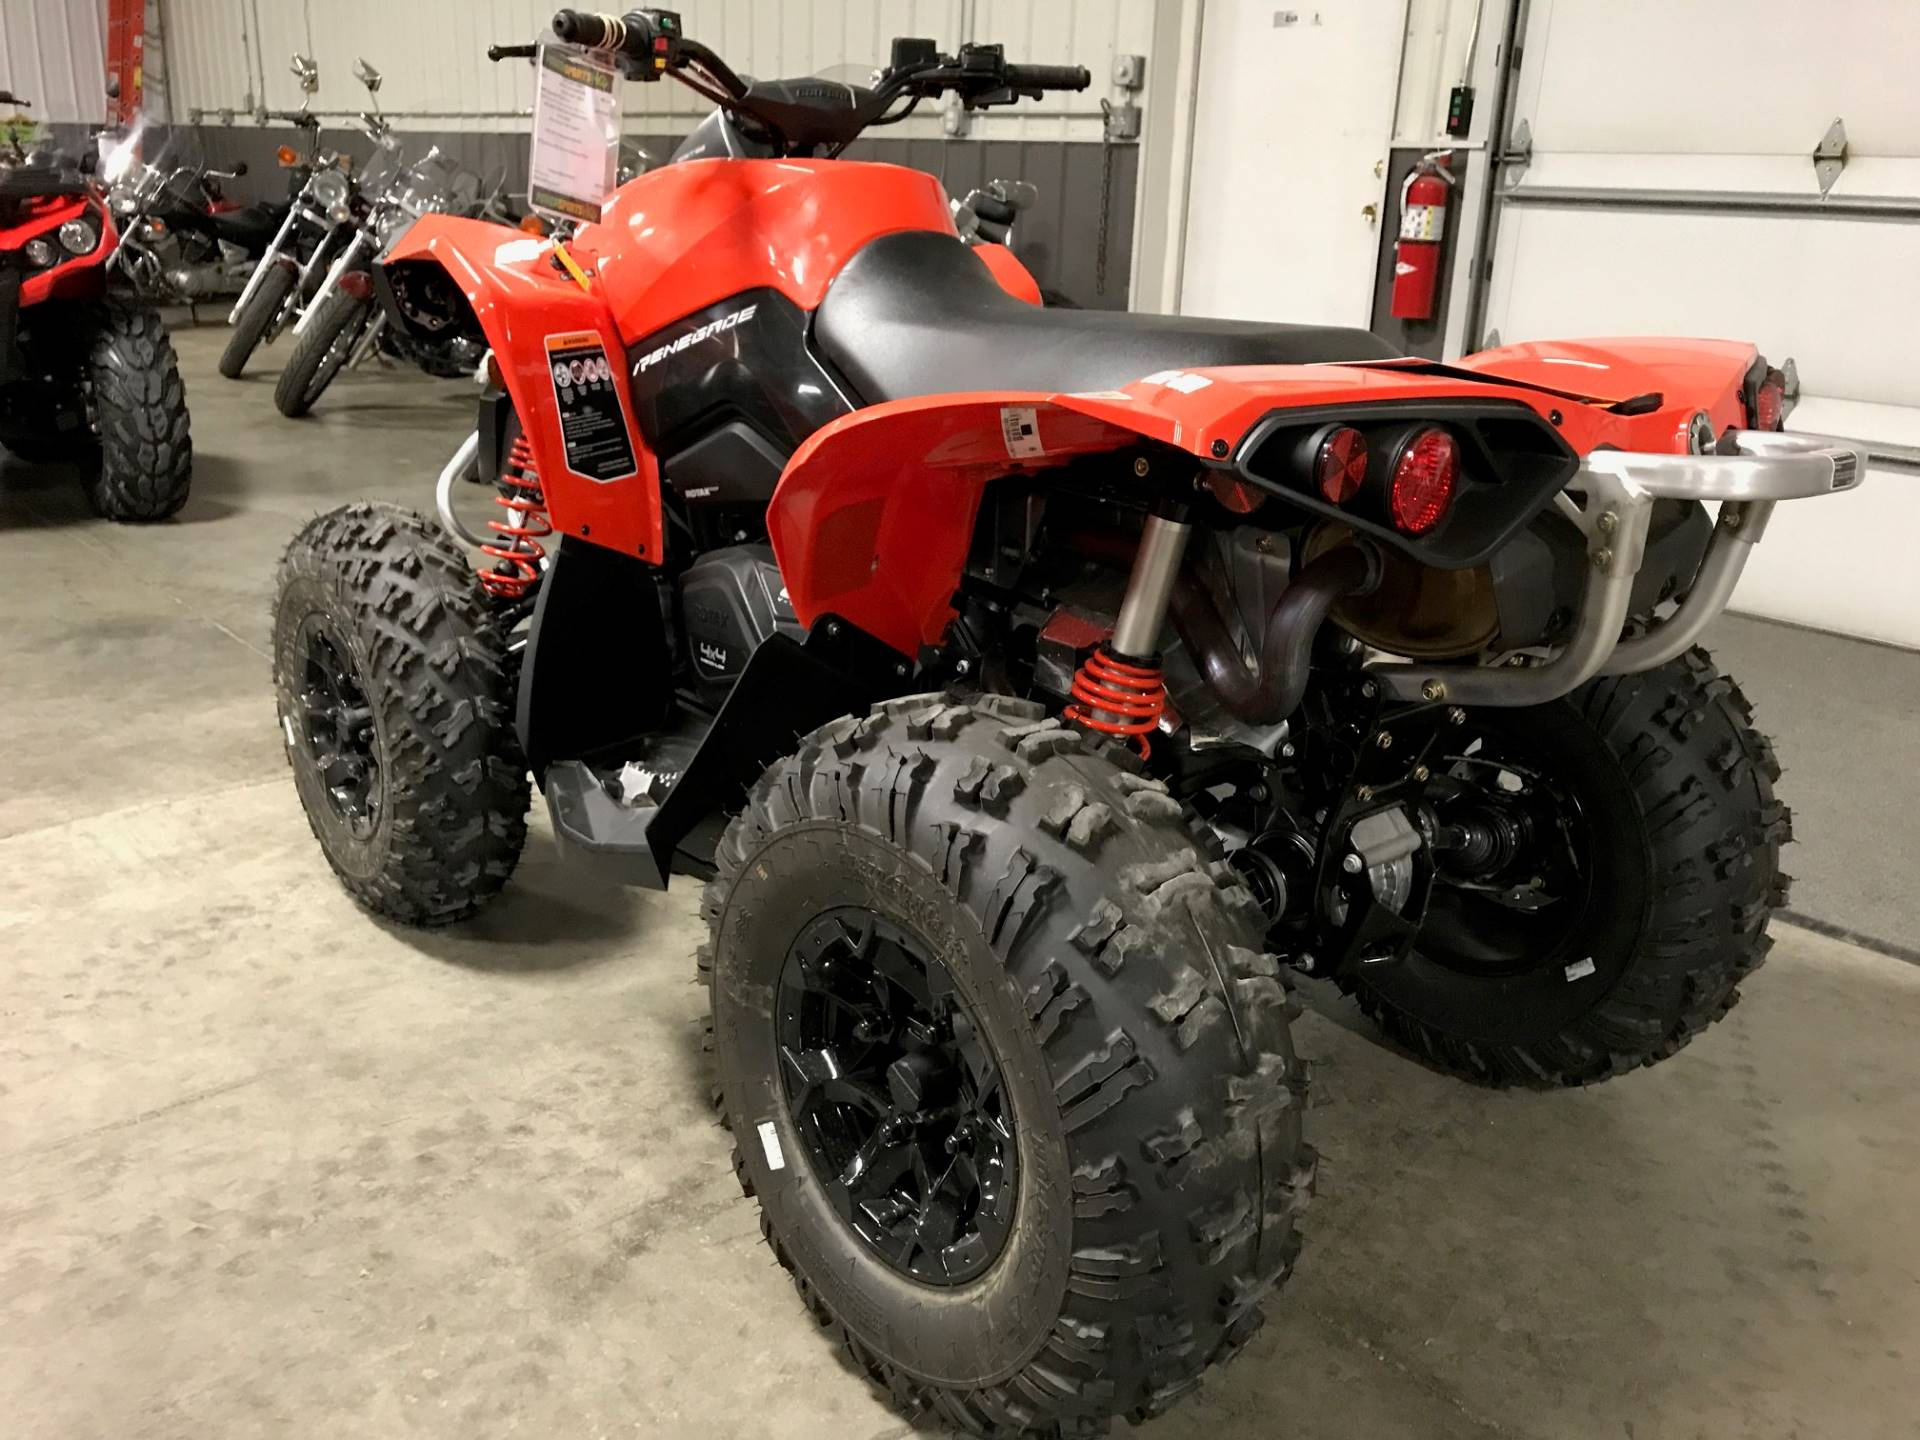 2017 Can-Am Renegade 850 in Charleston, Illinois